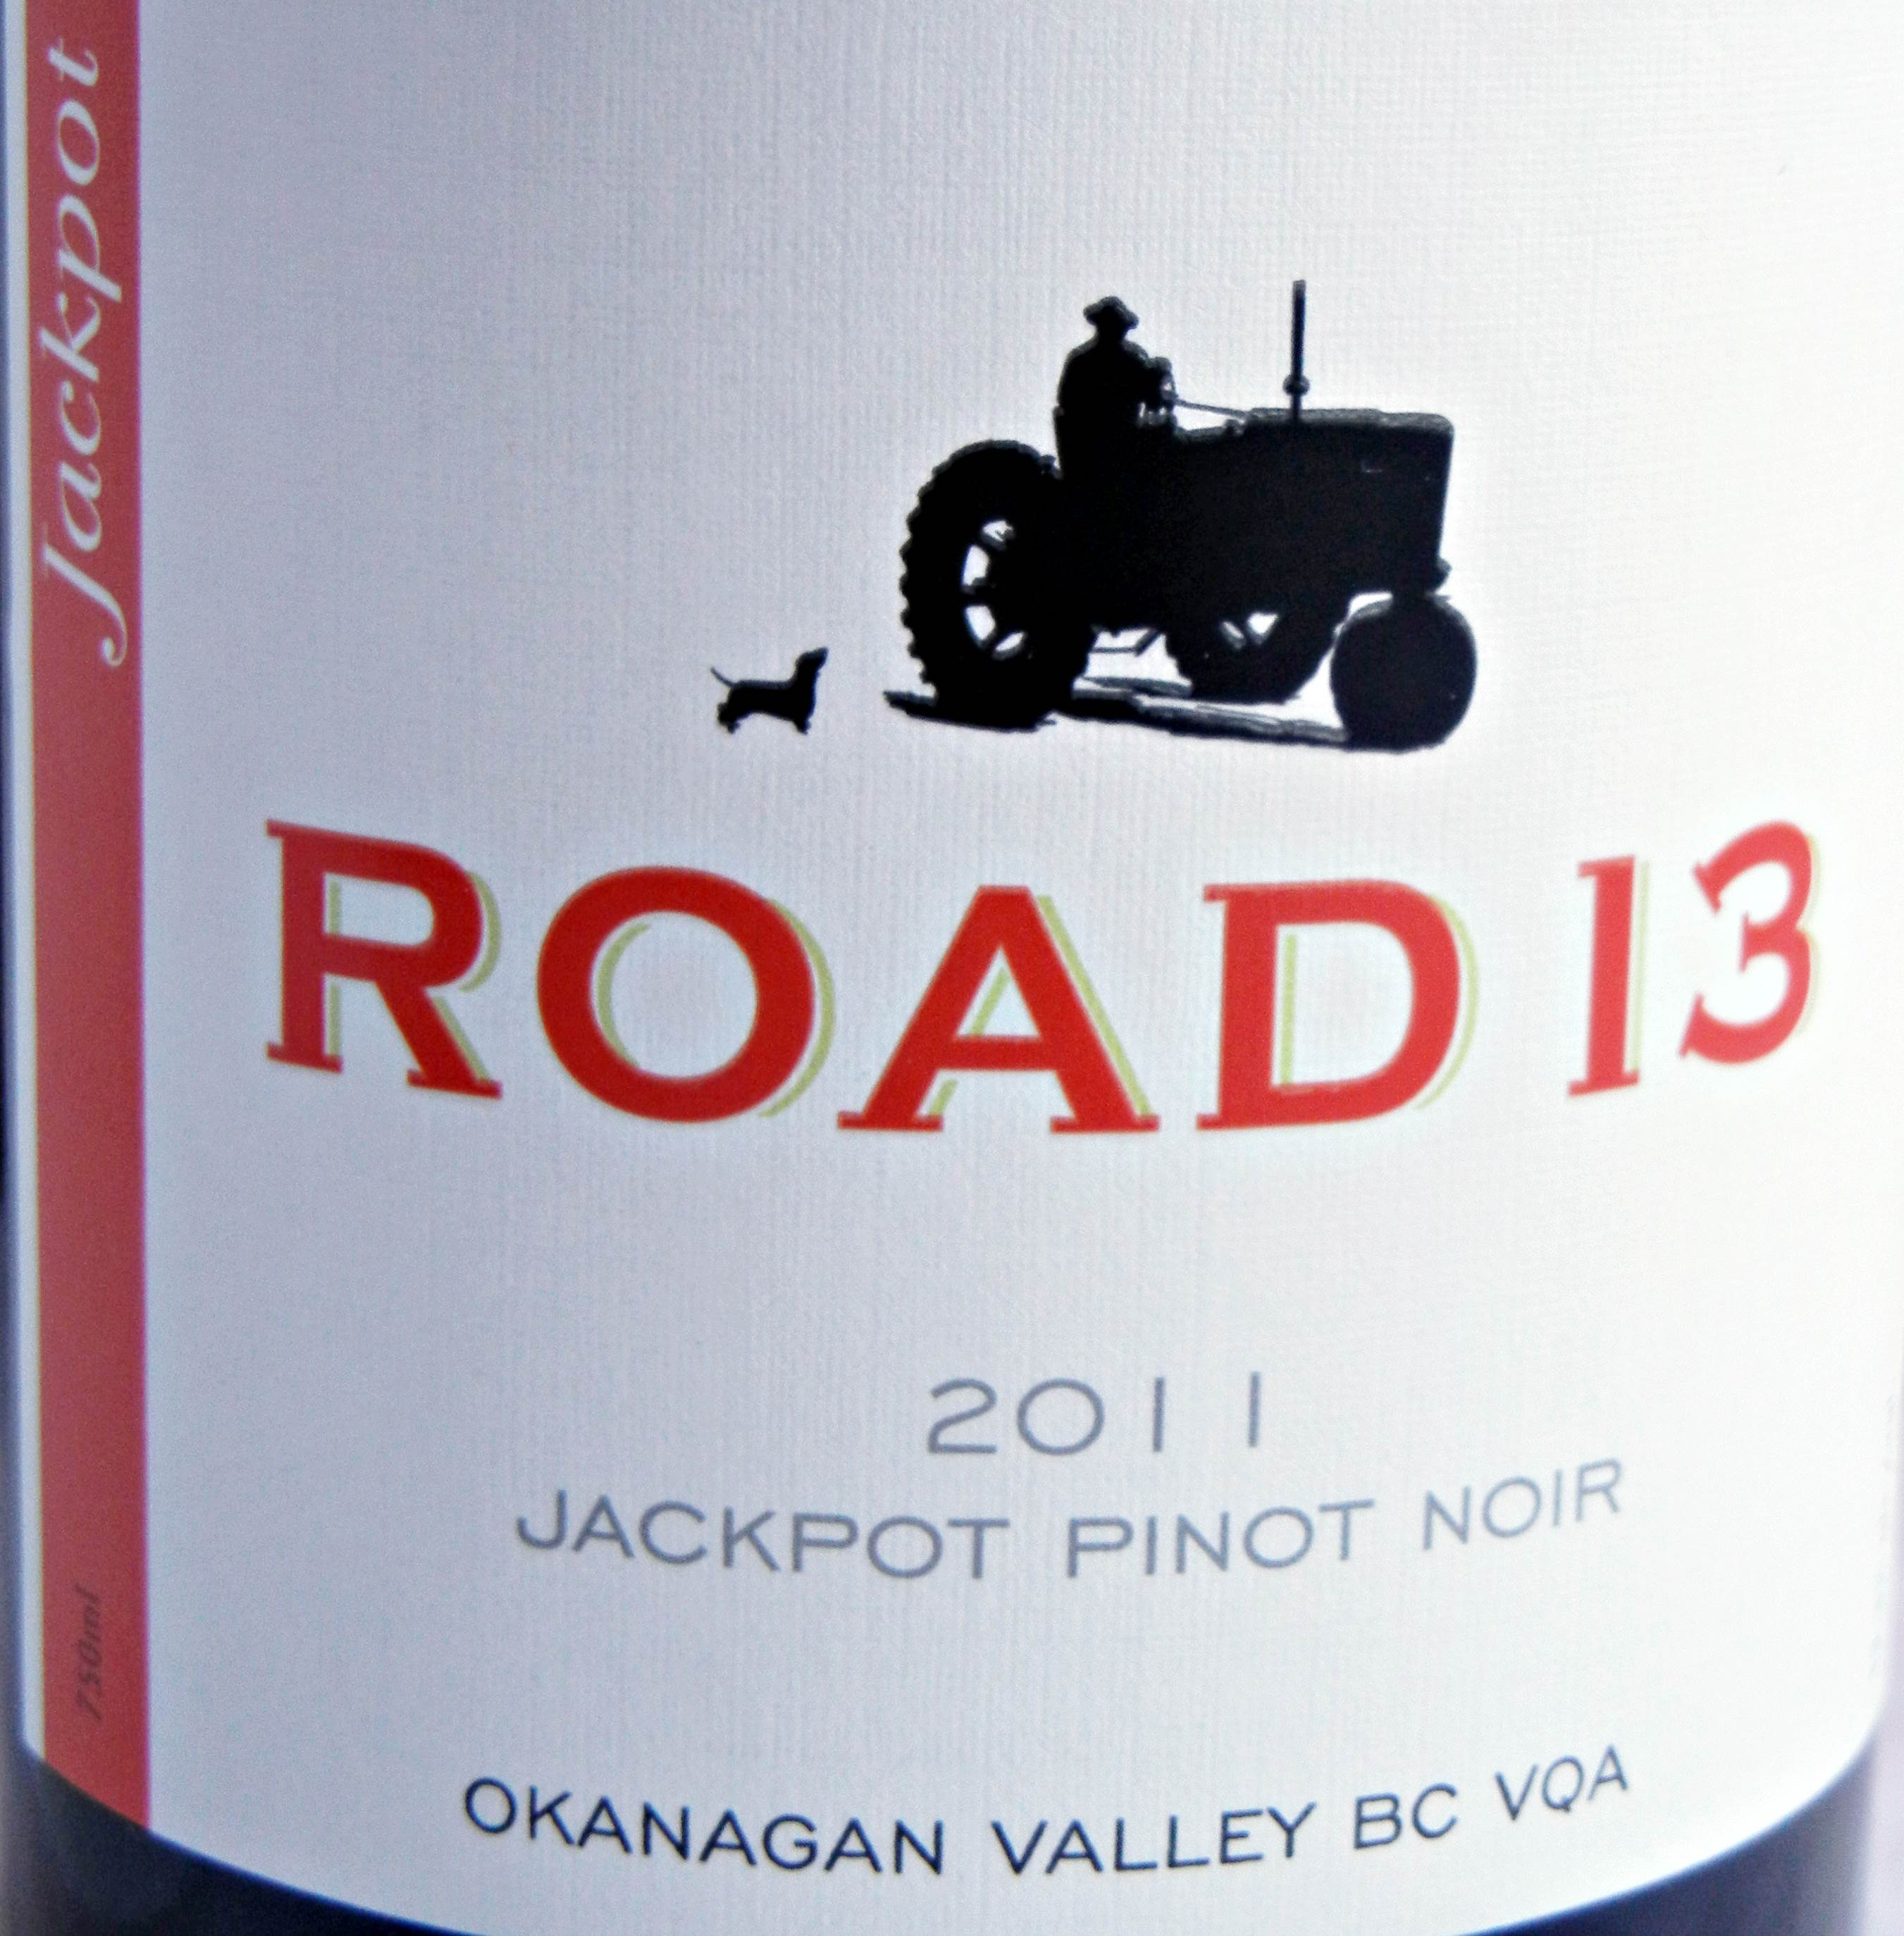 Road 13 Jackpot Pinot Noir 2011 Label - BC Pinot Noir Tasting Review 21